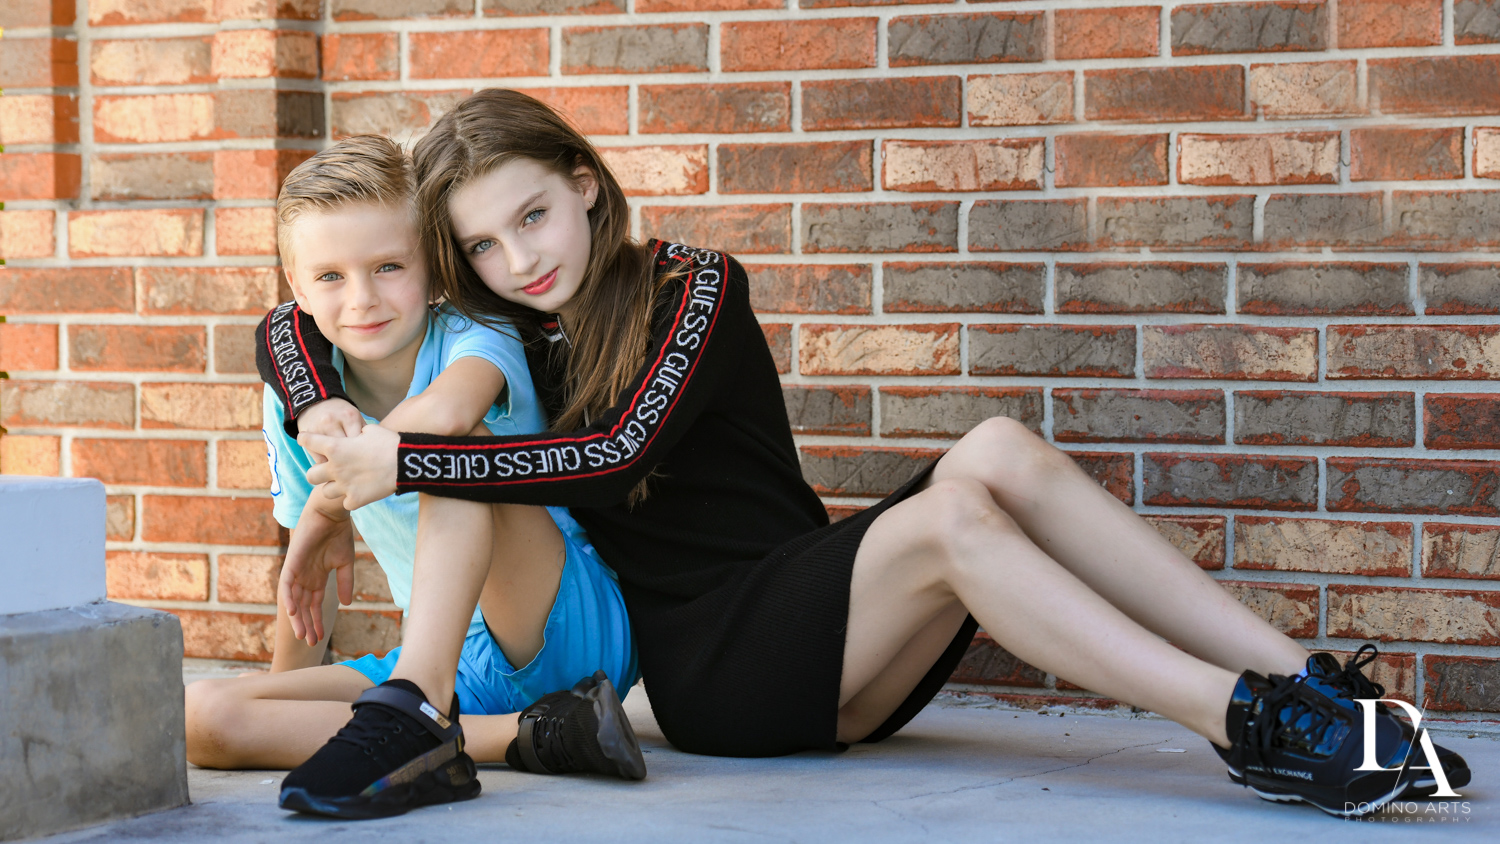 sibling love at Family Photo Session Riverwalk Fort Lauderdale by Domino Arts Photography